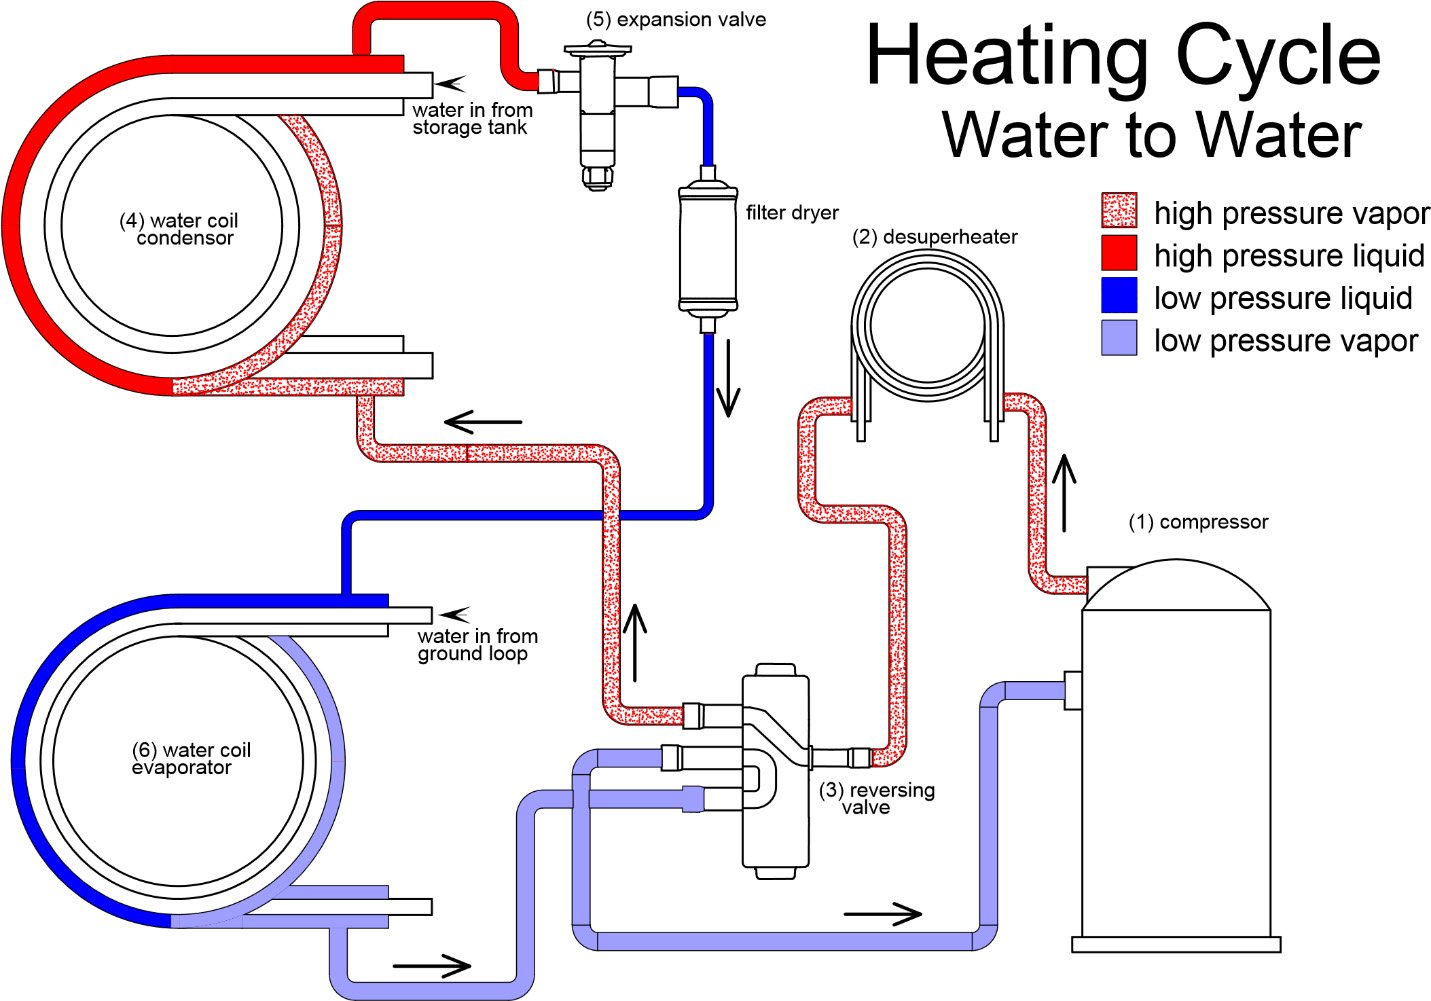 Heating Cycle - Water to Water